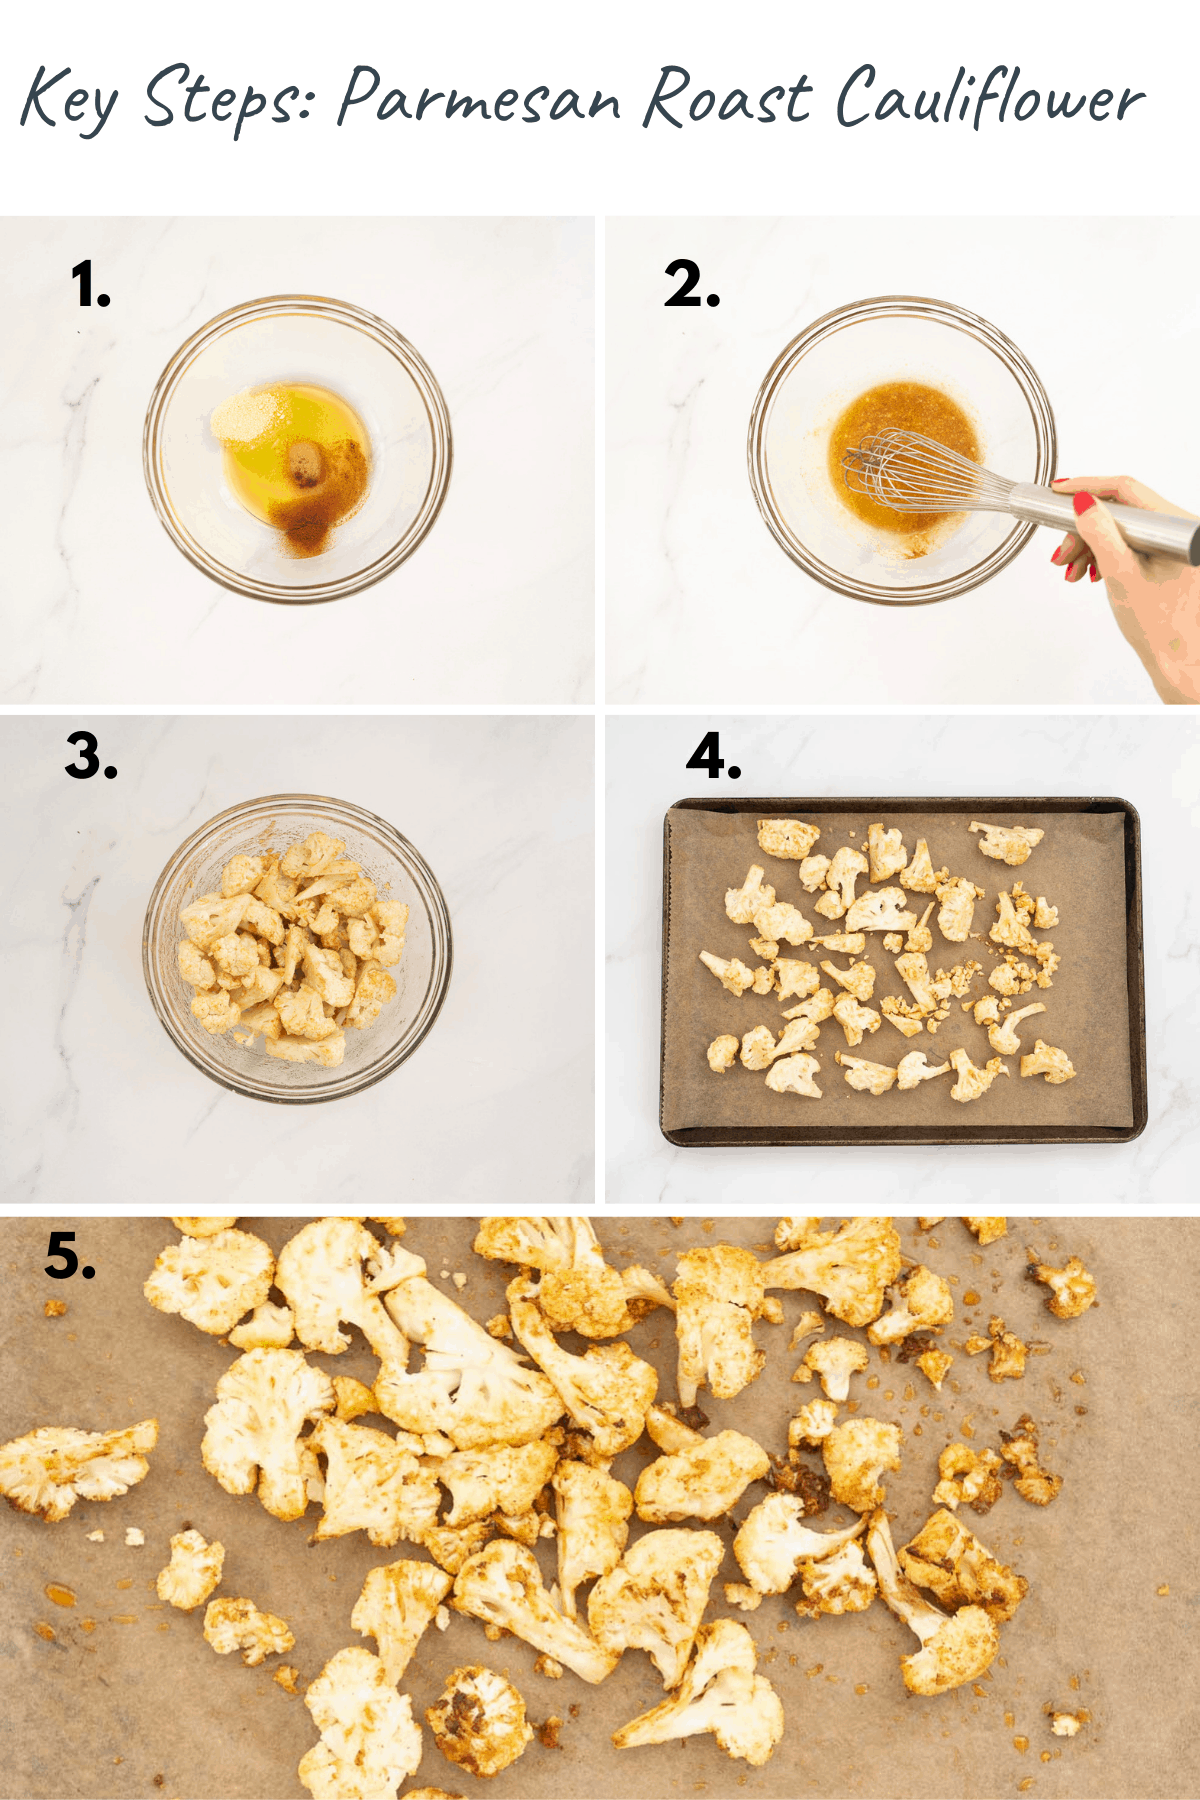 5 photo collage showing the process steps to make parmesan roast cauliflower